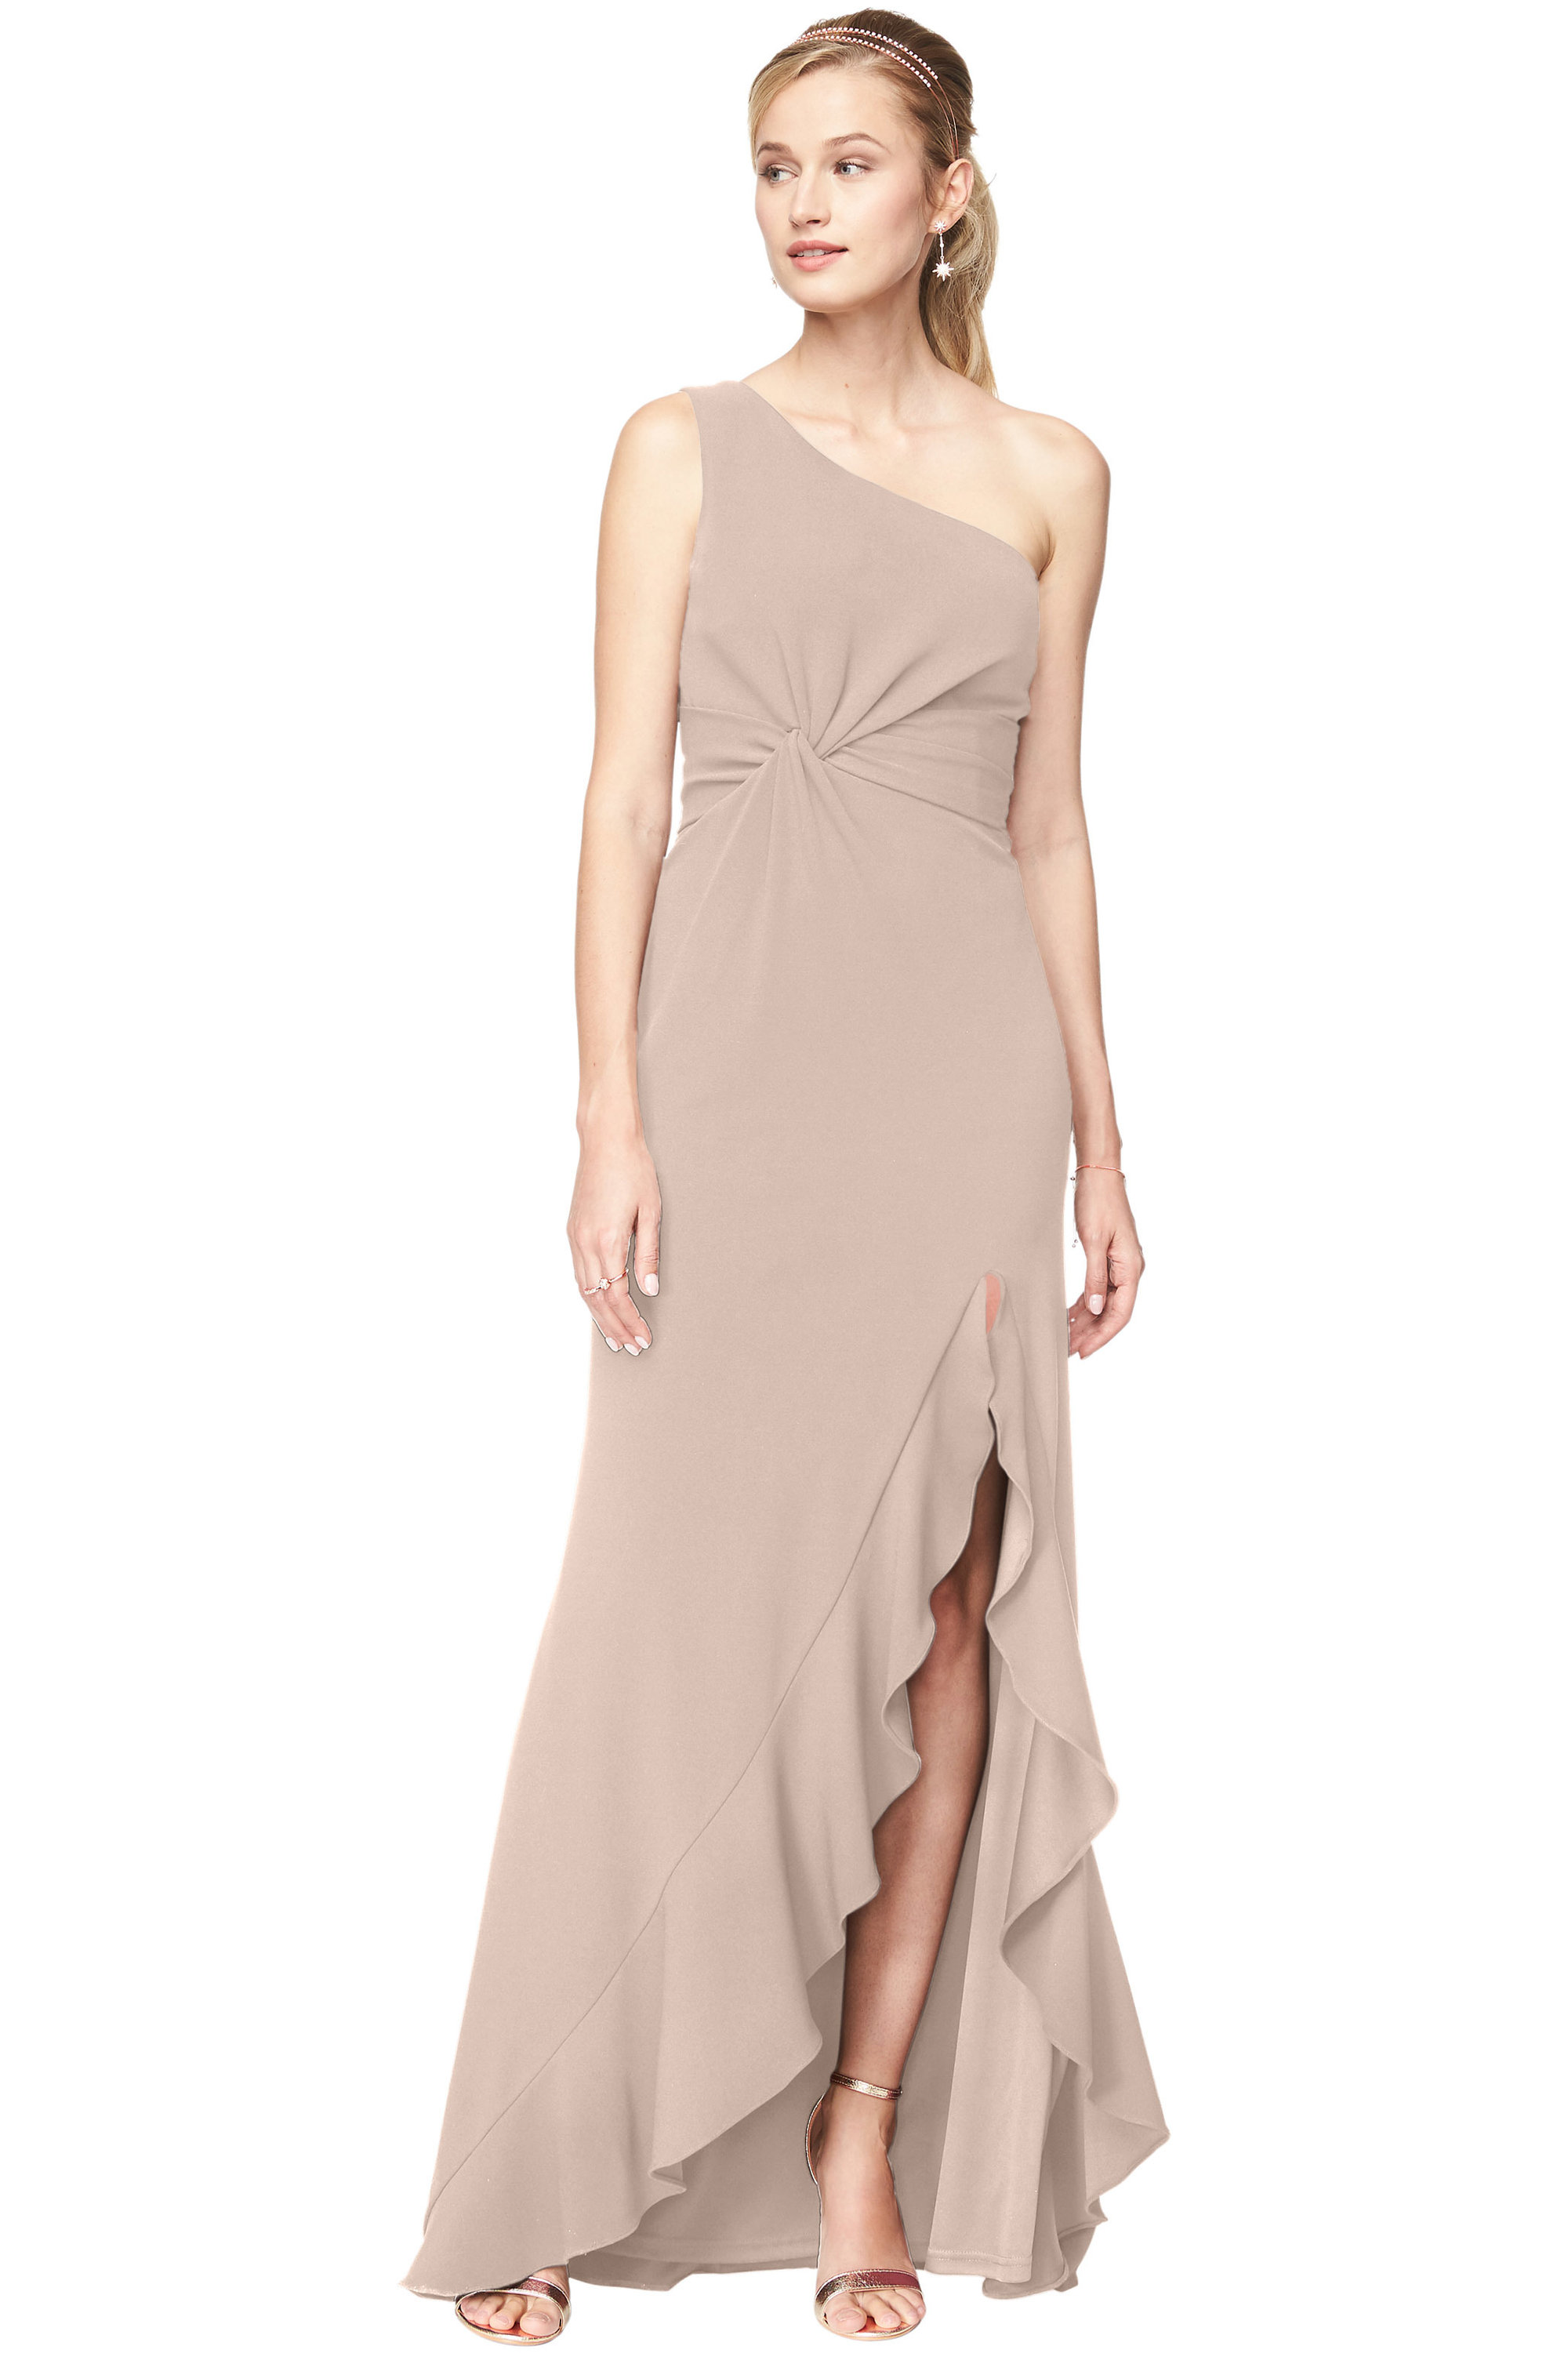 Bill Levkoff NUDE Stretch Crepe One-Shoulder A-Line gown, $240.00 Front